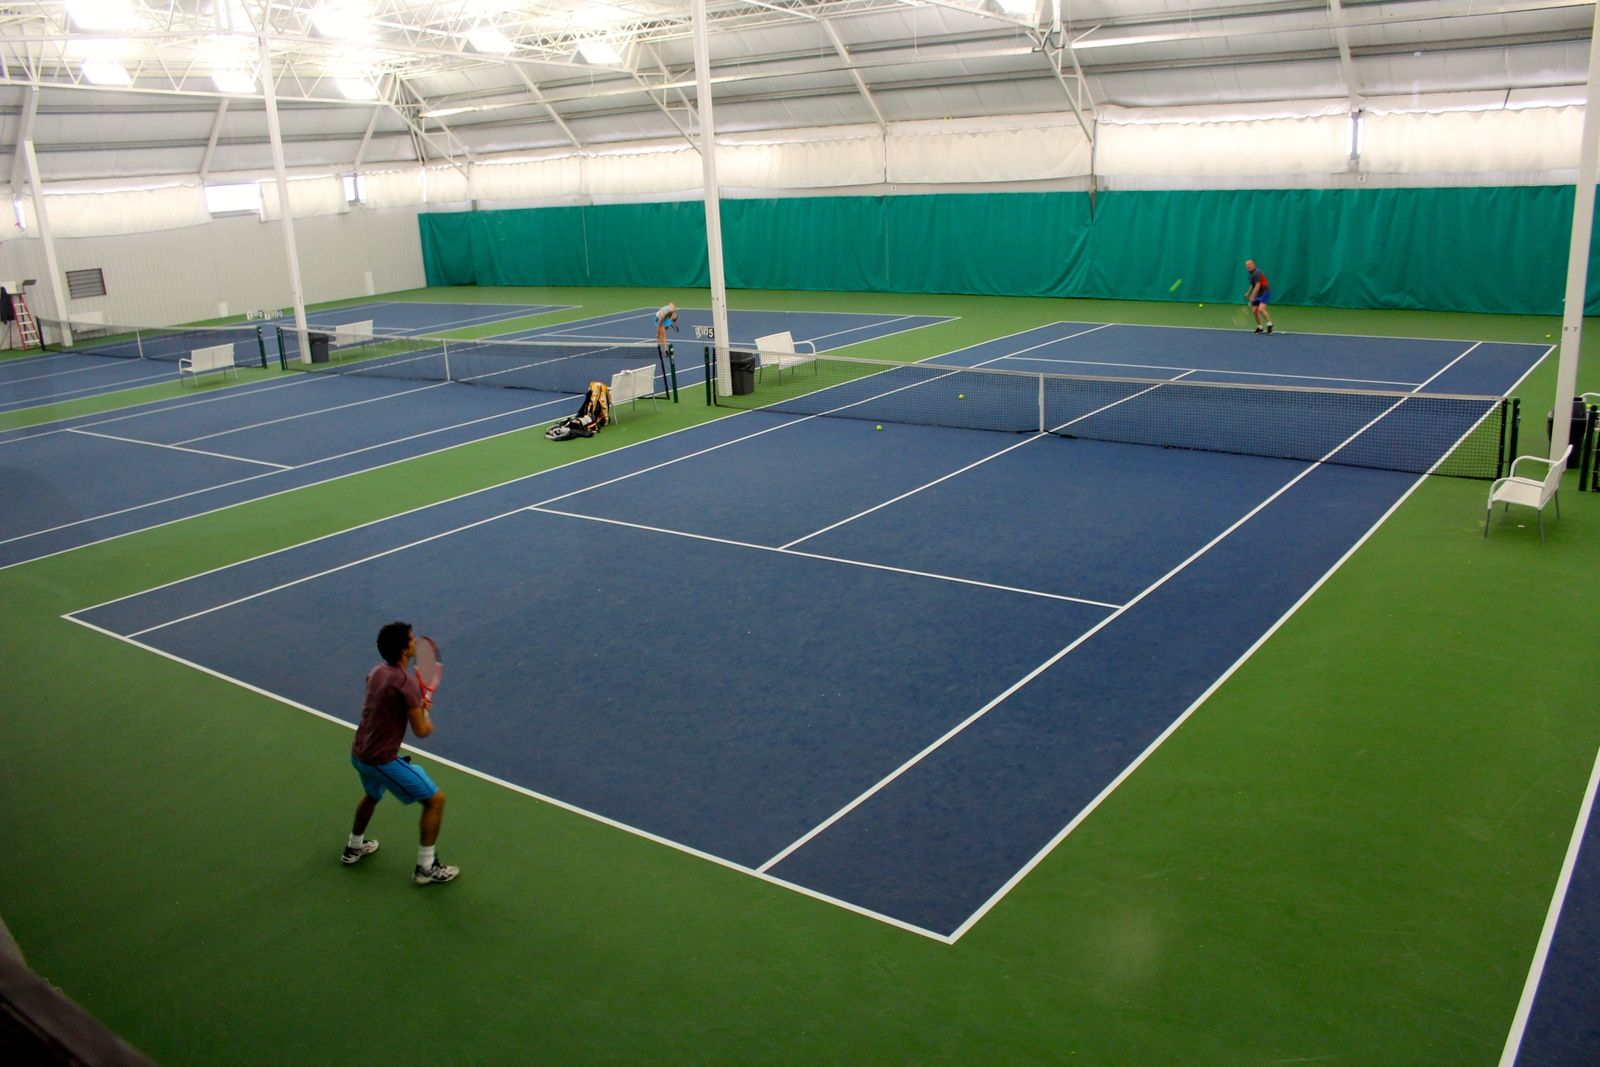 solid tennis academy